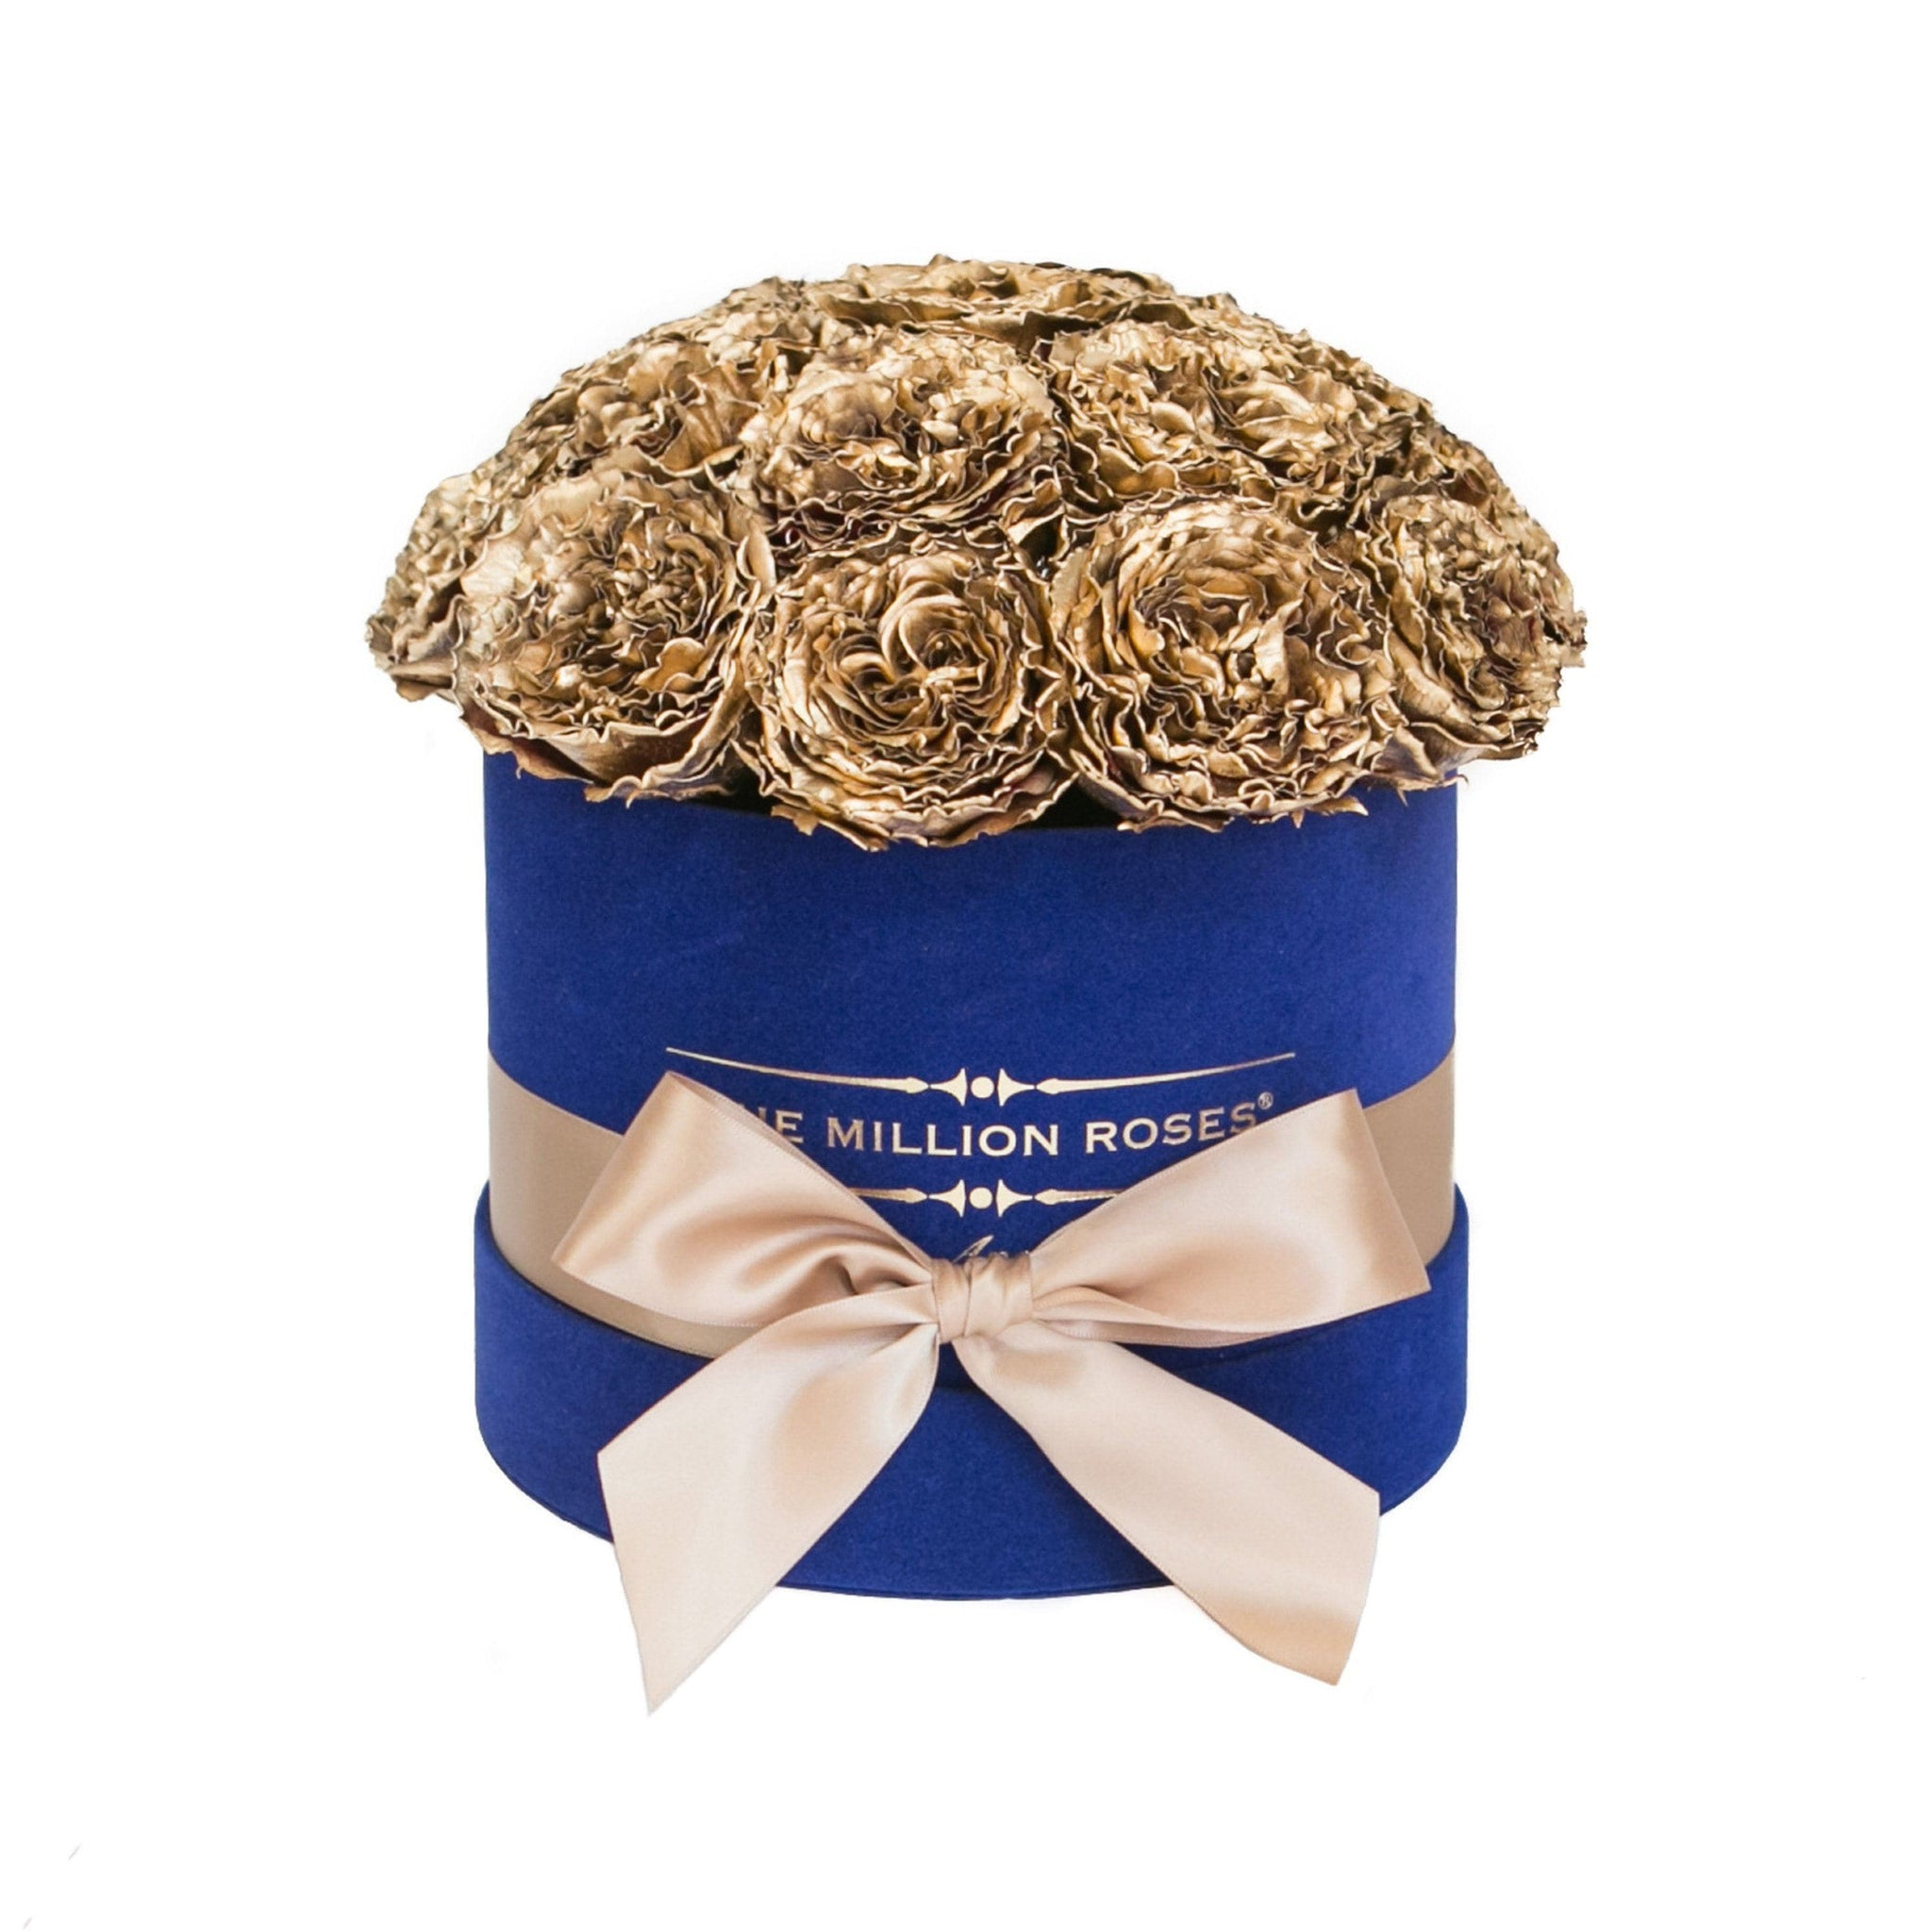 The Million Small Royal Blue Suede Box Gold Celestial Roses